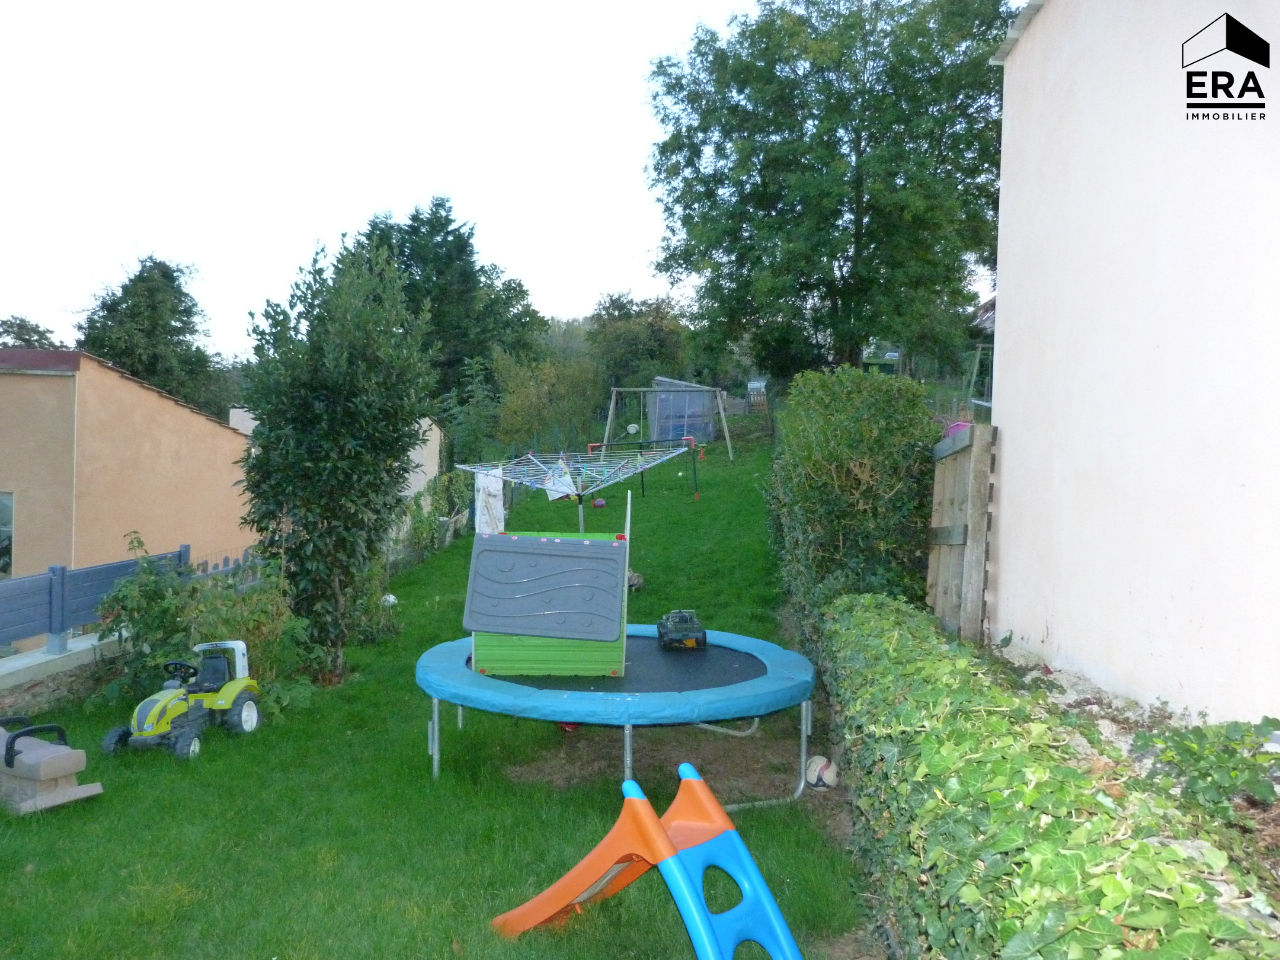 Maison à vendre OUThttp://era.immo-facile.com/catalog/admin-v2/categories_office.php?action=new_product&pID=28